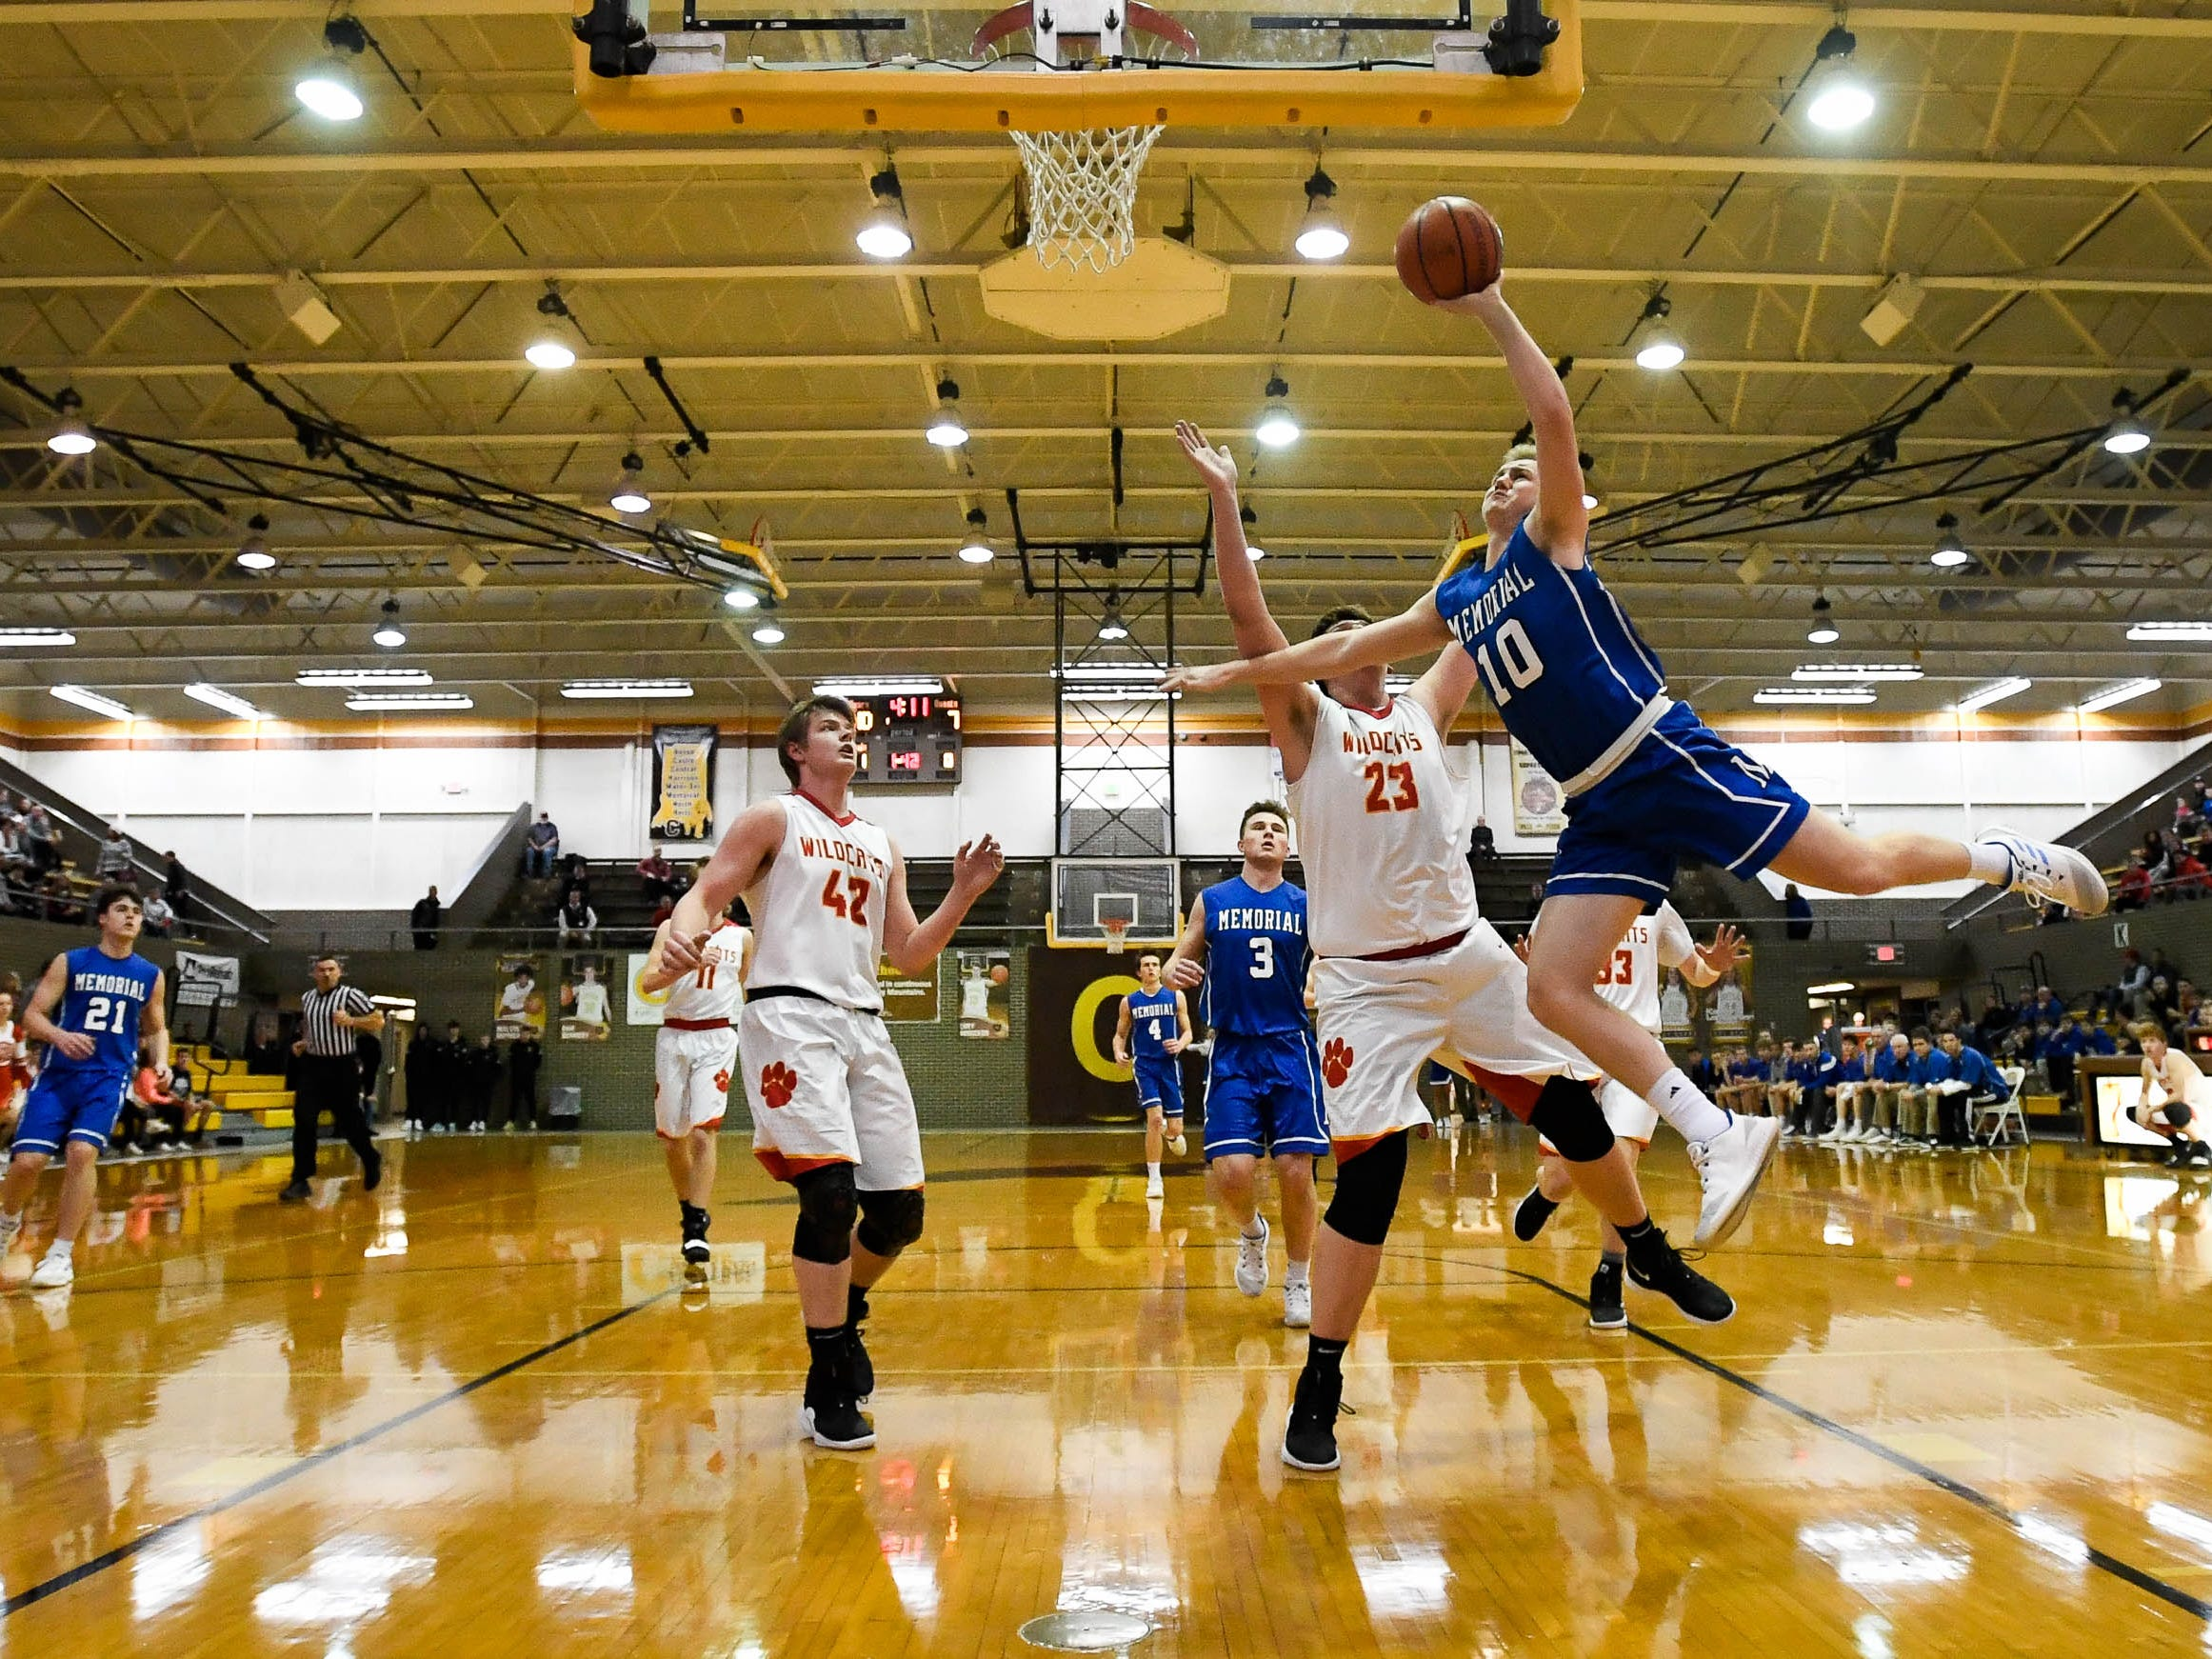 Memorial's Michael Lindauer (10) goes up for a lay-up as the Memorial Tigers play the Mater Dei Wildcats in the Southern Indiana Athletic Conference semi-finals at Central High Thursday, January 10, 2019.